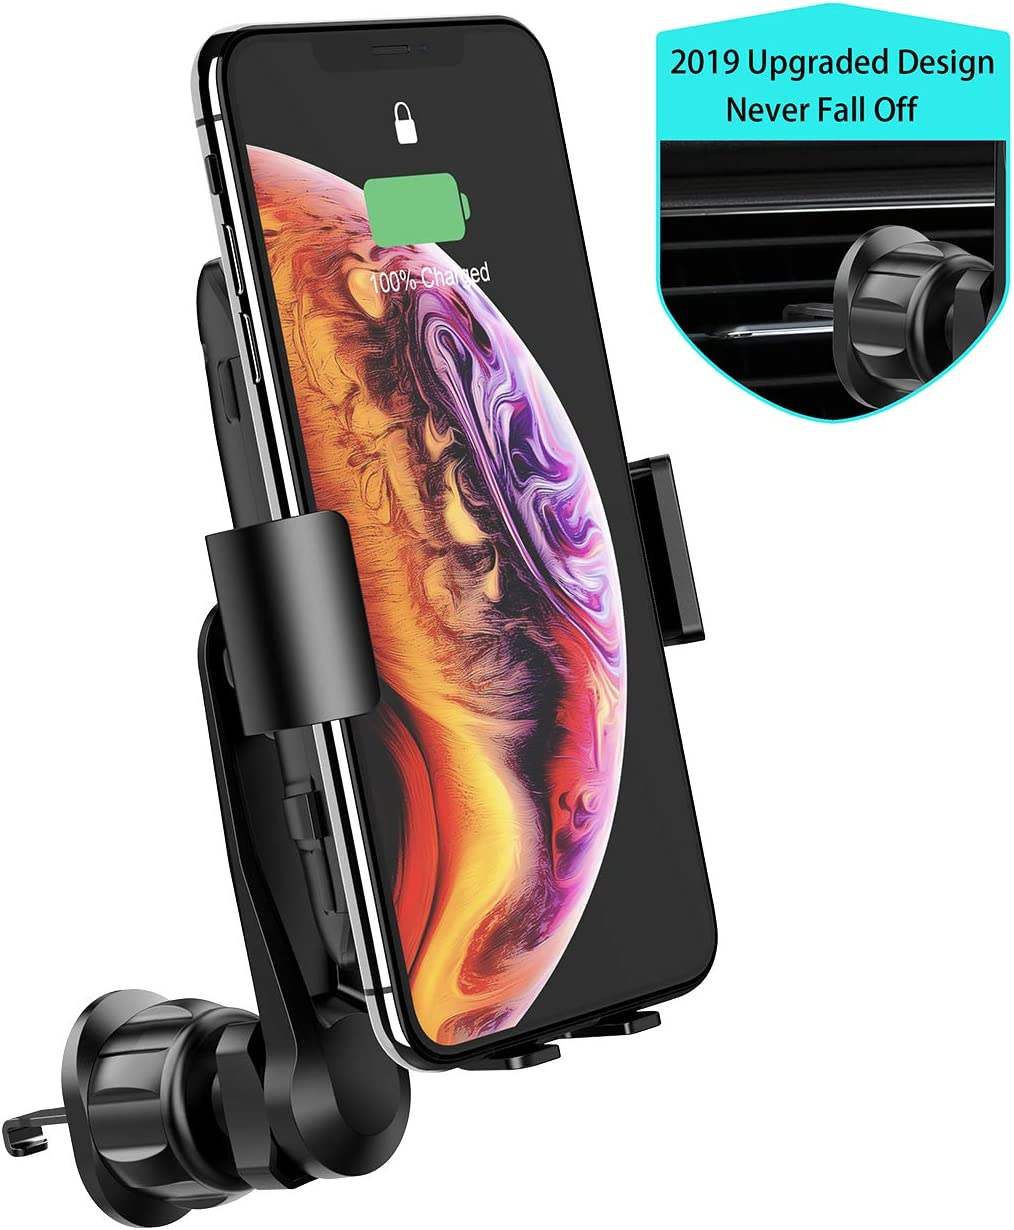 Wireless Car Charger, MANKIW 10W Qi Fast Charging Car Charger Mount Phone Holder Automatic open Clamping,Compatible for iPhone 11/11pro/11pro MAX/XS MAX/XR/XS/X/8Plus/8,Samsung Galaxy S9/S8/S8+